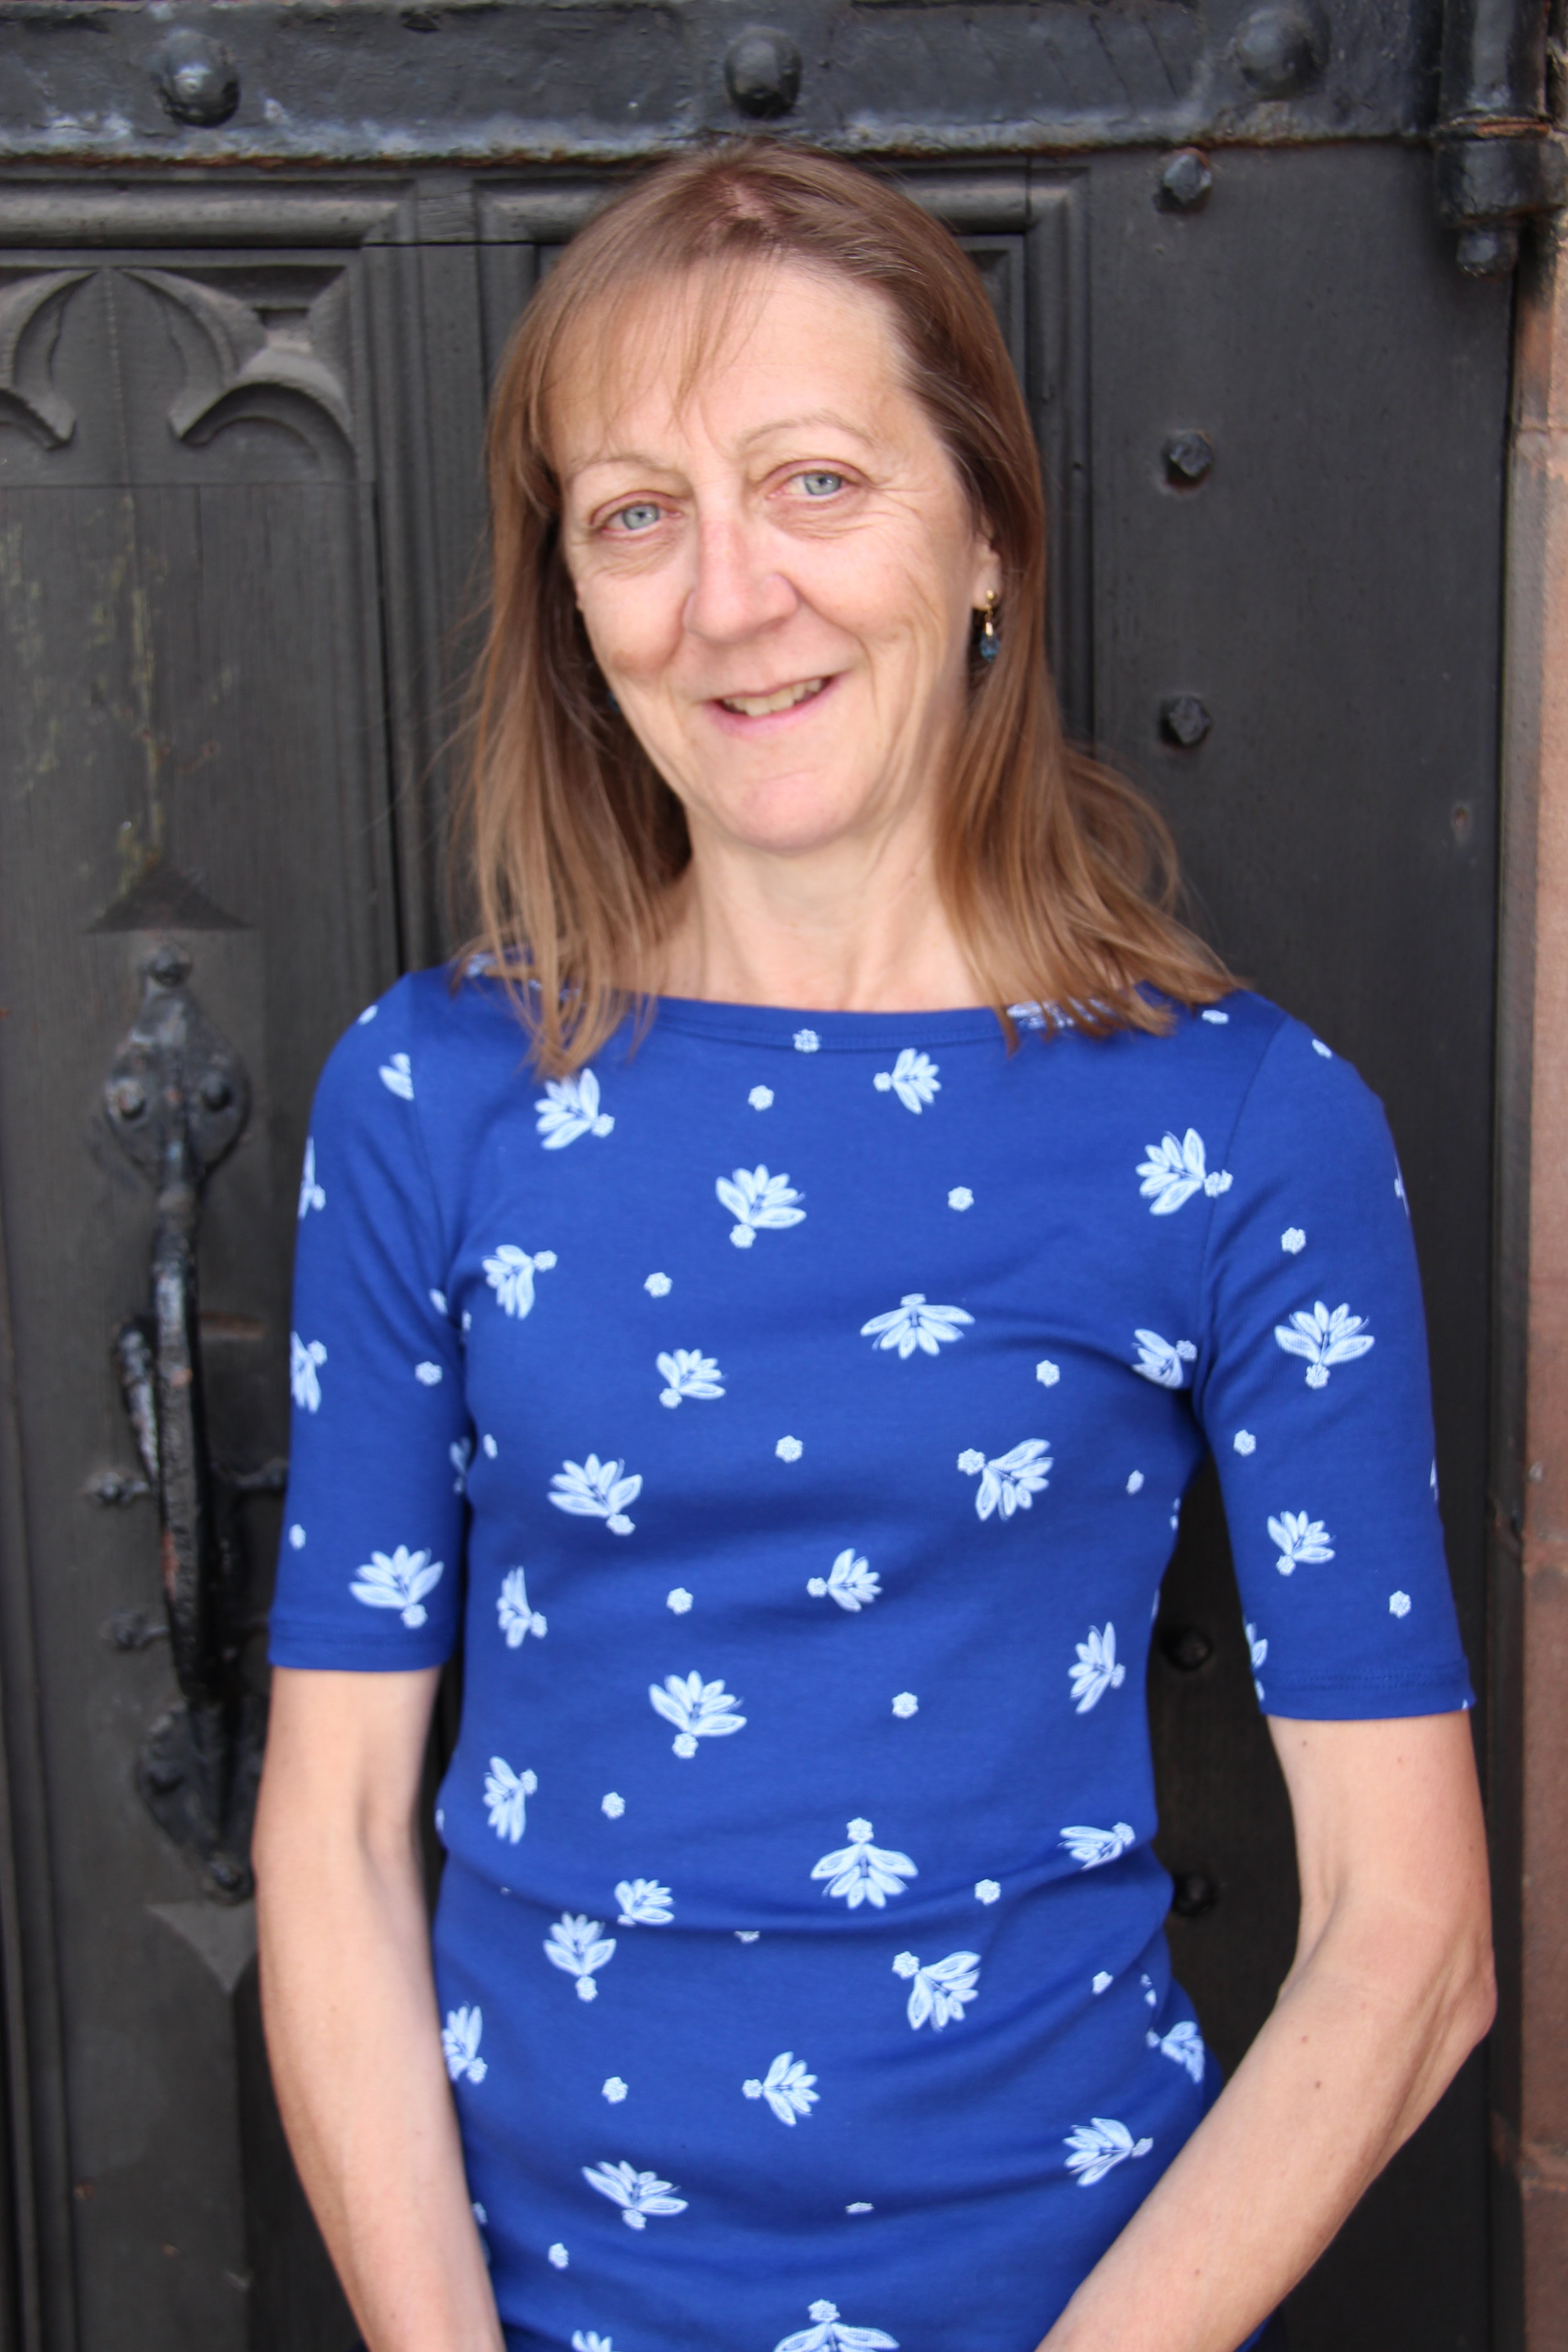 Kim Quinn - Office Administrator   Kim has been an office administrator at St Helens Parish Church for many years, following over 24 years' experience as a solicitor. She is married to Mark, and they have a daughter at University. Kim's hobbies include horse-riding, dog-walking, reading & going to the cinema.